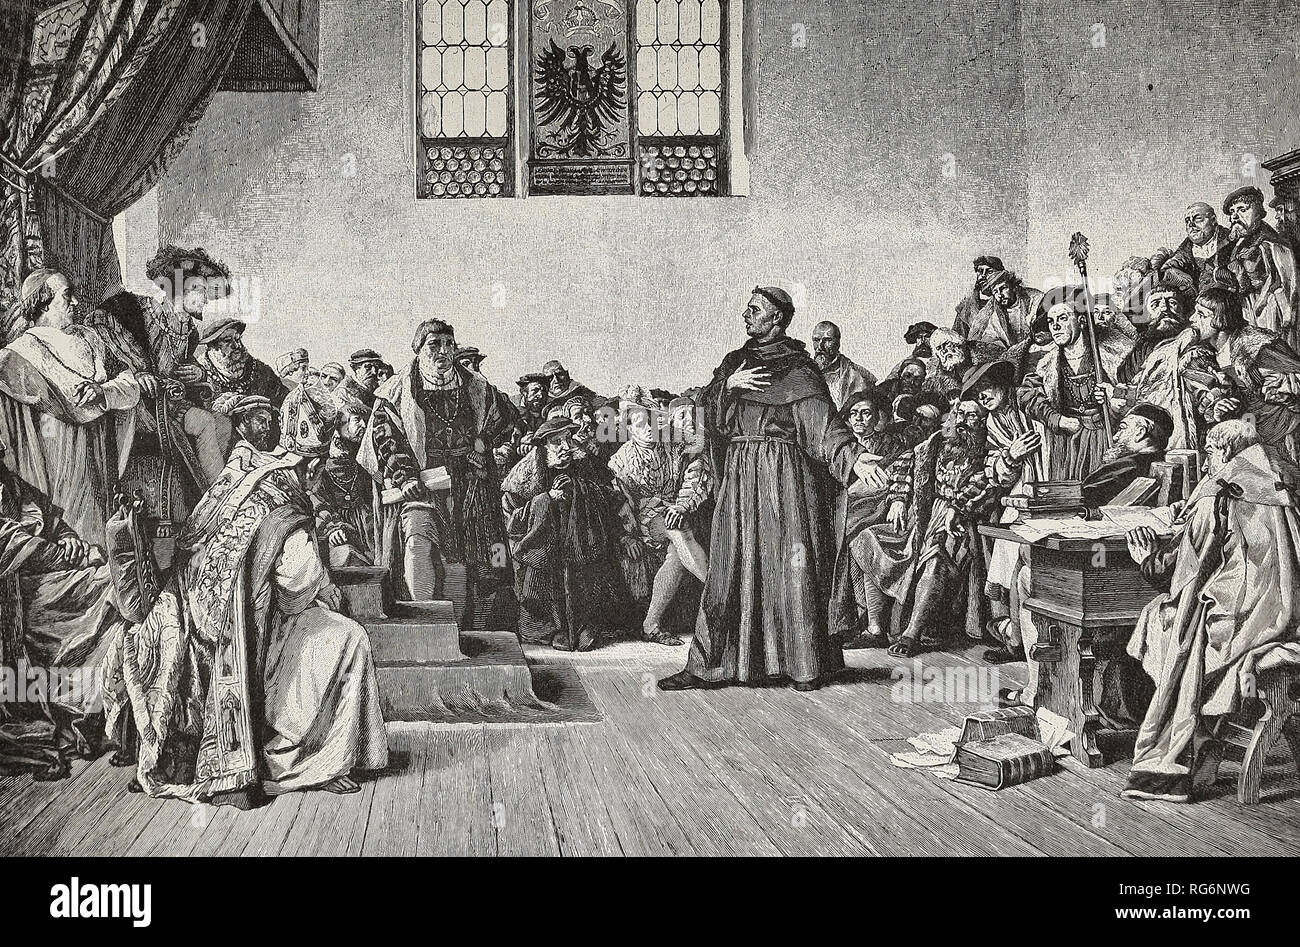 Luther defies the Emperor's Power - Charles V at Worms commands Luther to retract his teachings - Stock Image